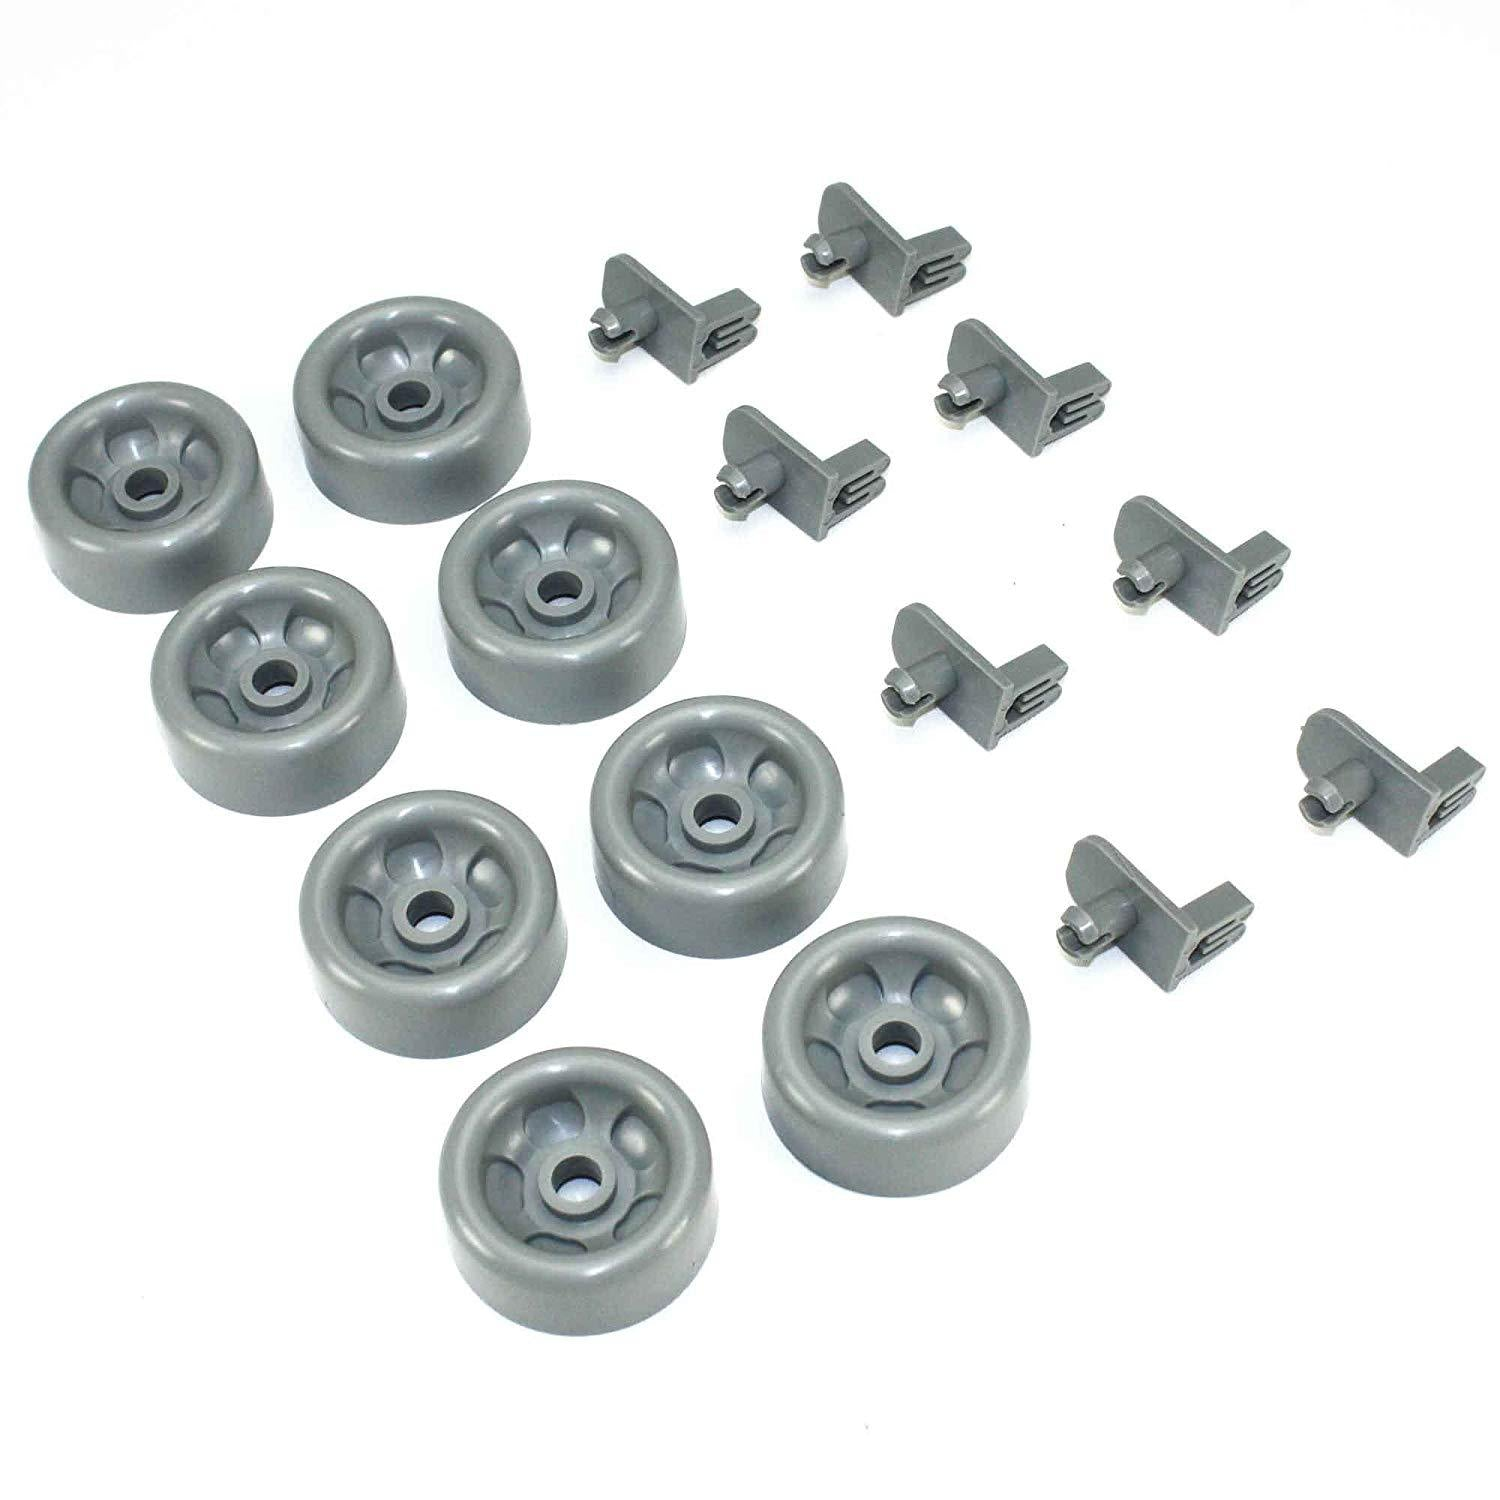 General Electric ZBD6890K00II Lower Rack Roller Kit Replacement